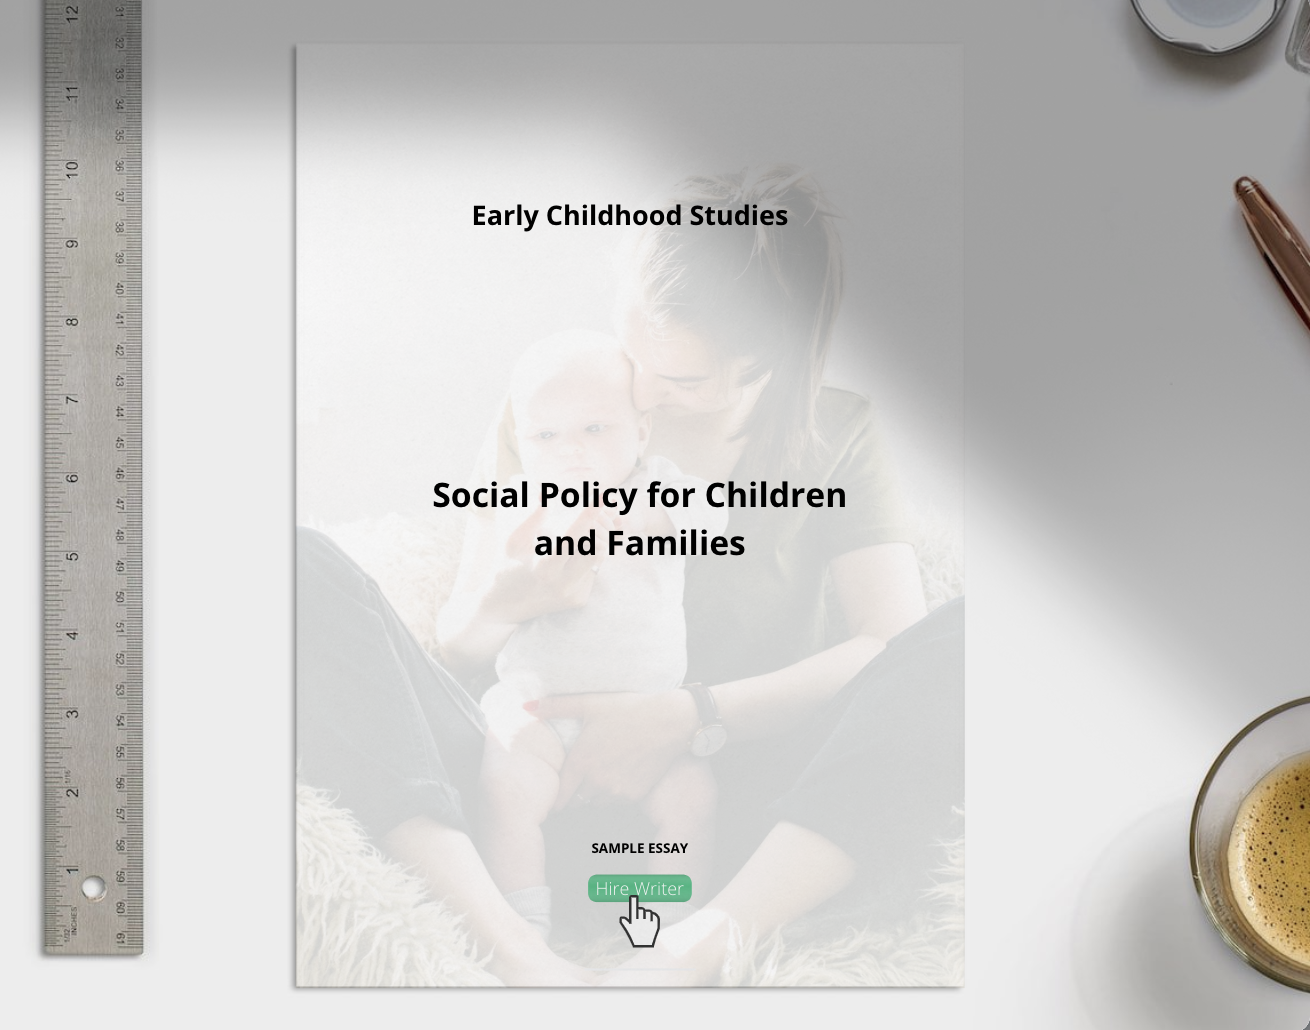 Early Childhood Studies Social Policy for Children and Families essay sample